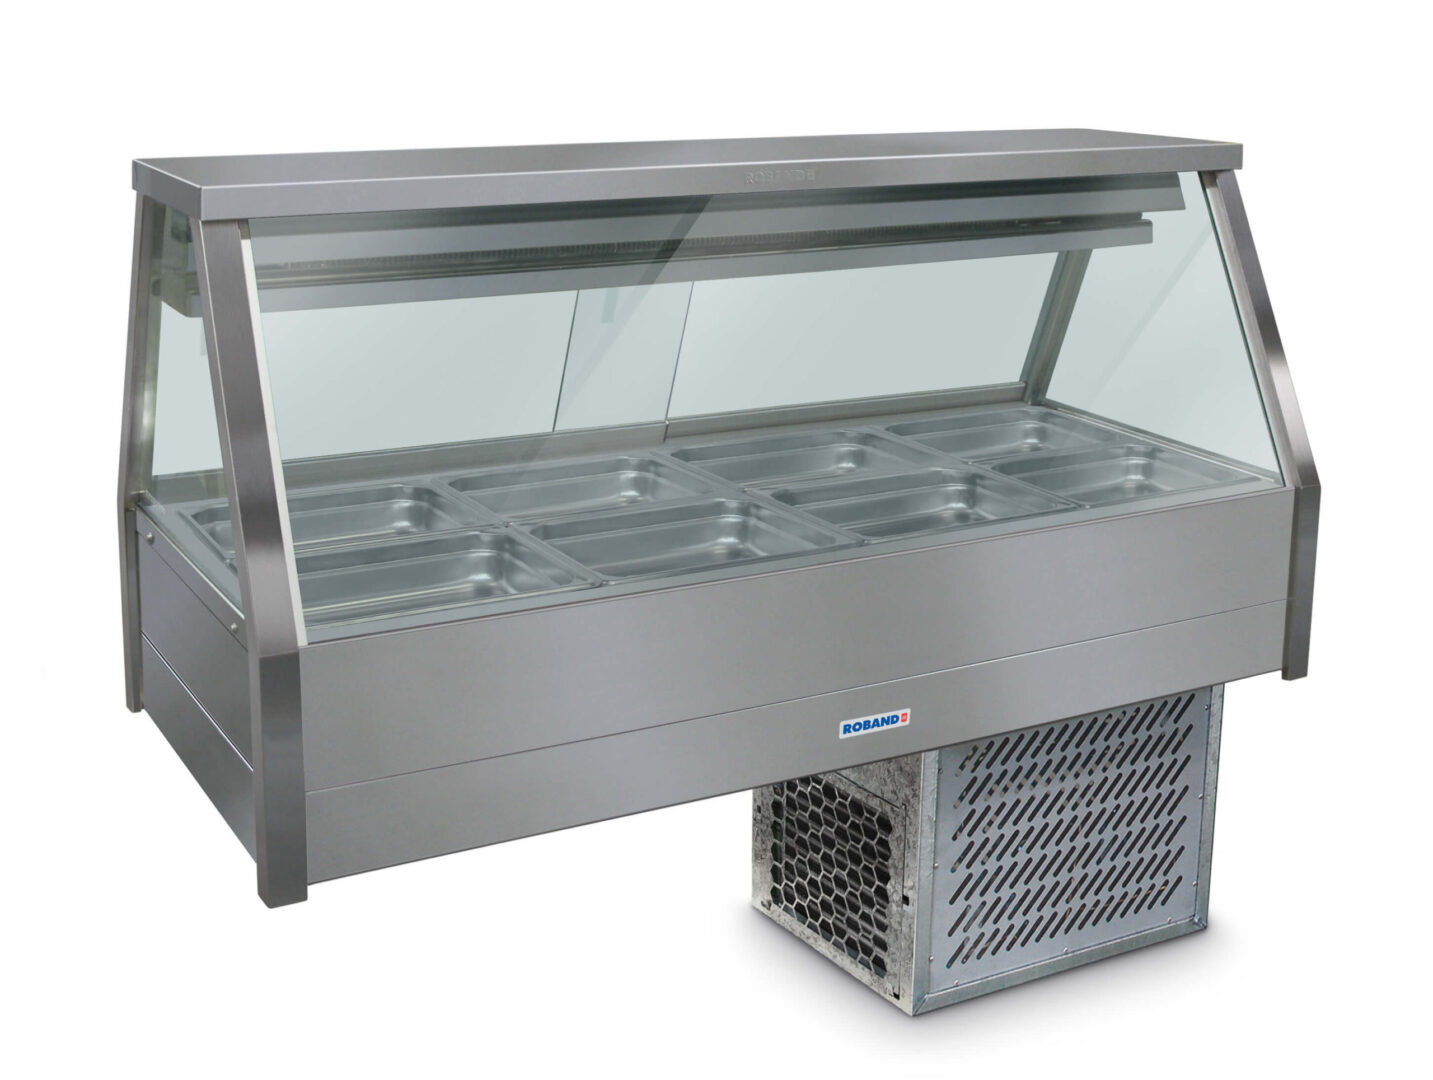 Roband Straight Glass Refrigerated Display Bar – Piped and Foamed only (no motor), 8 pans